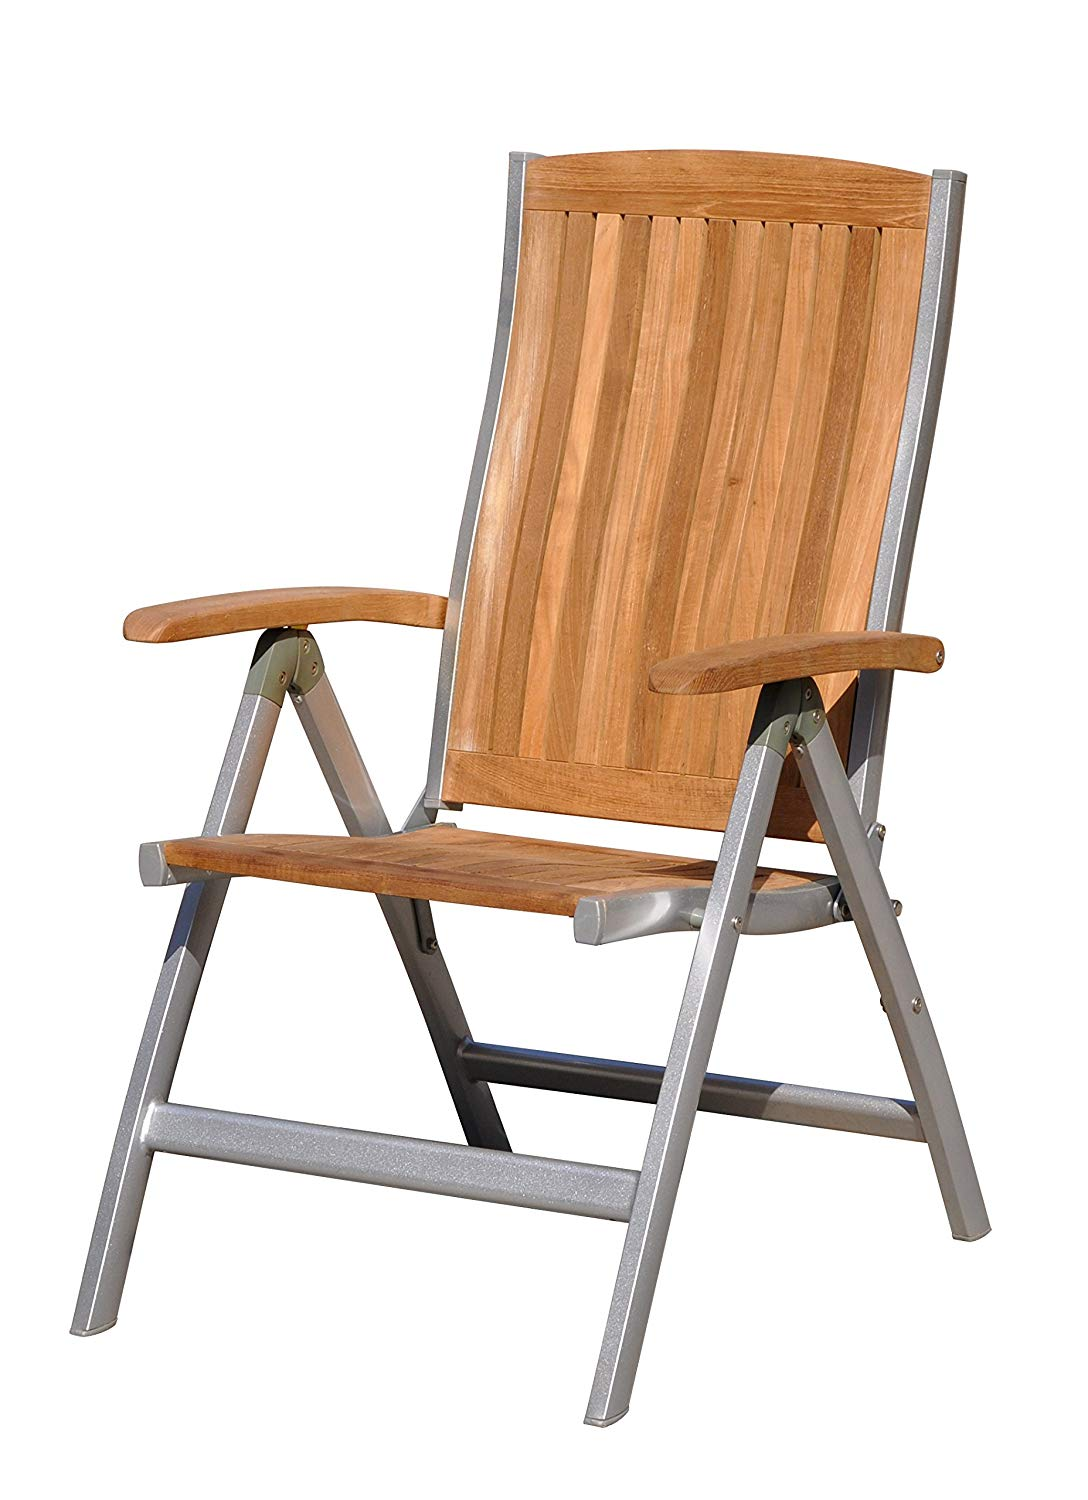 Courtyard Casual Natural Finish Burma Teak and Aluminum Outdoor Chair